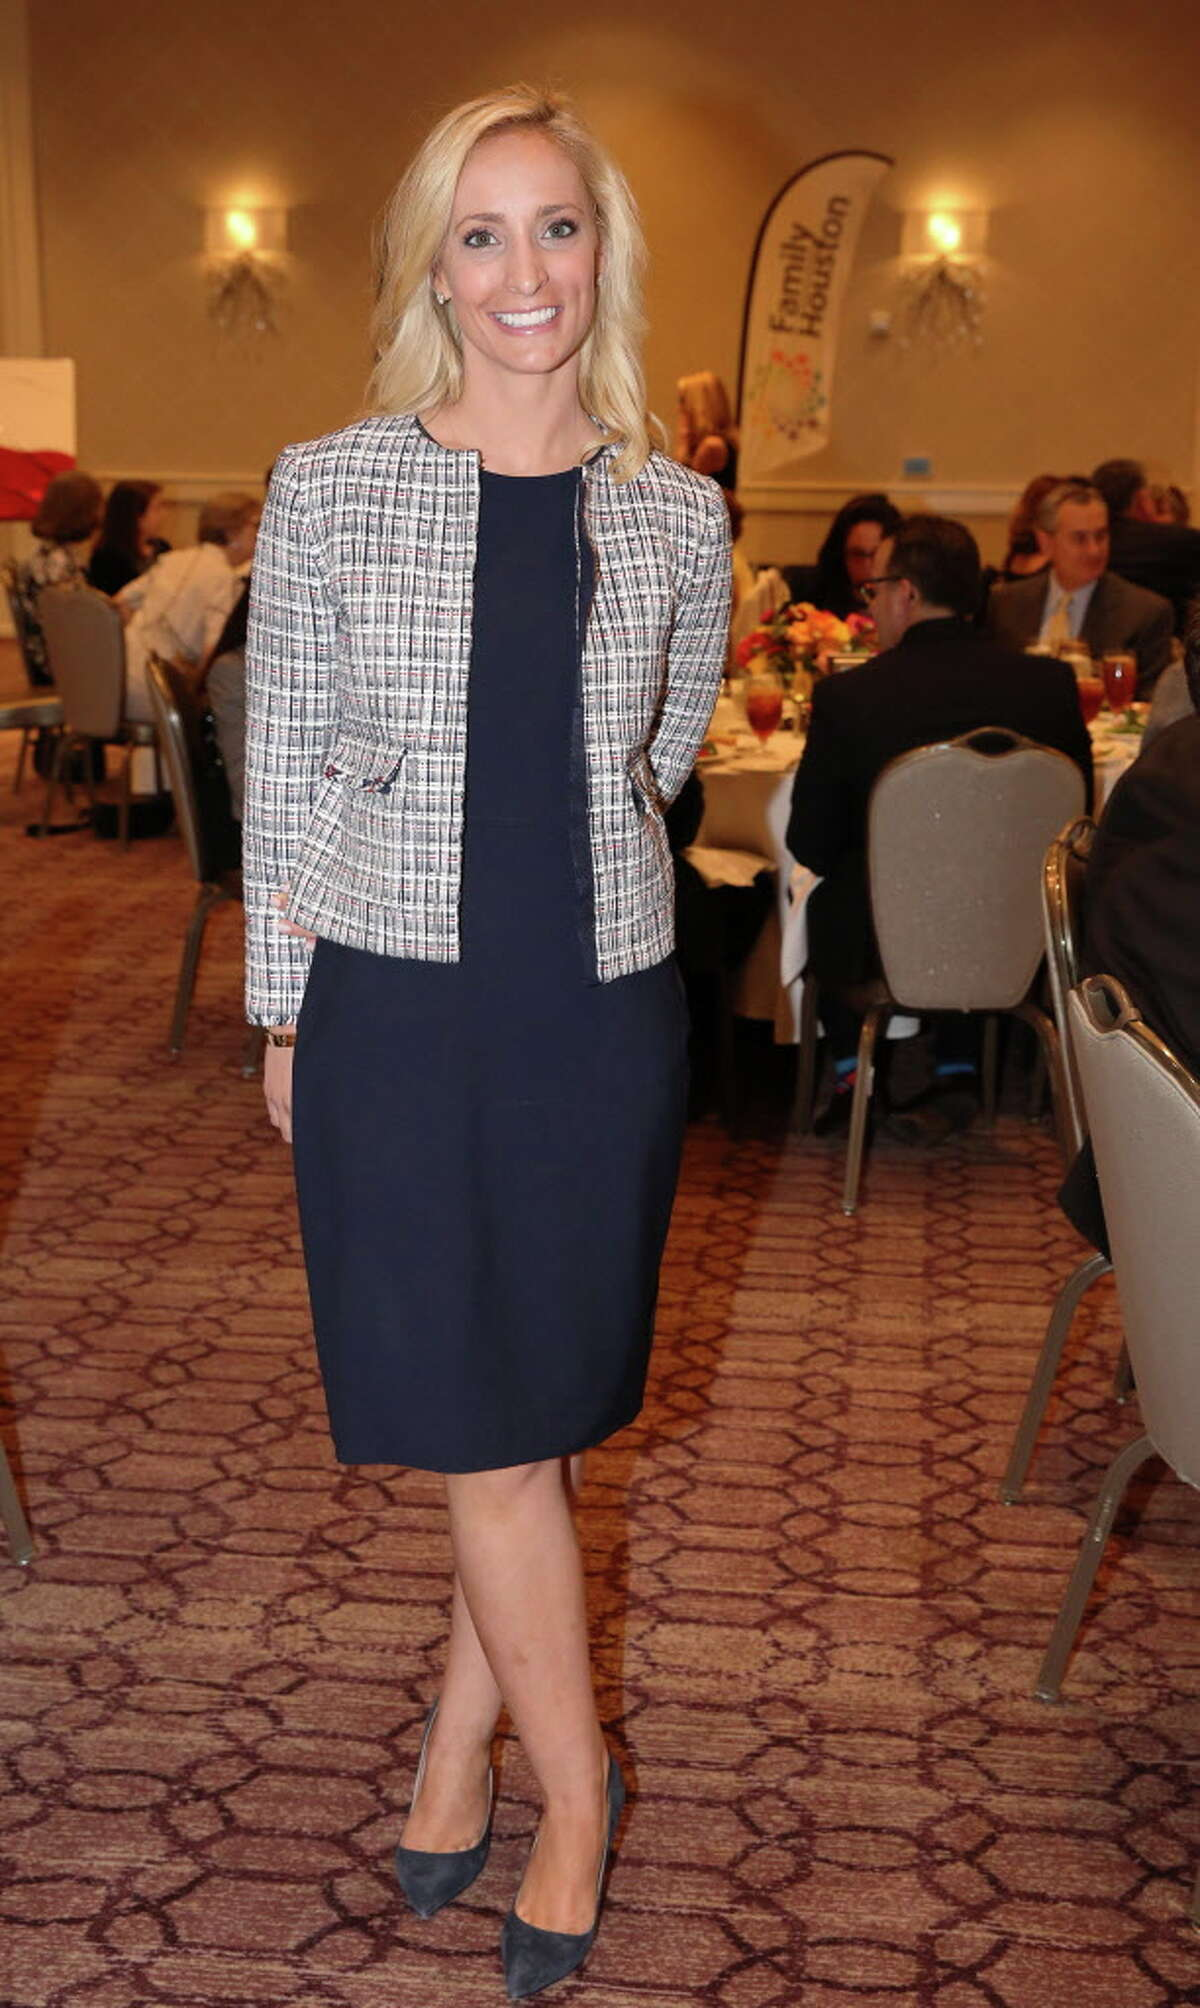 Guest speaker Elizabeth McIngvale poses for a photo at the Family Houston luncheon at The Briar Club Wednesday, May 10, 2017, in Houston.